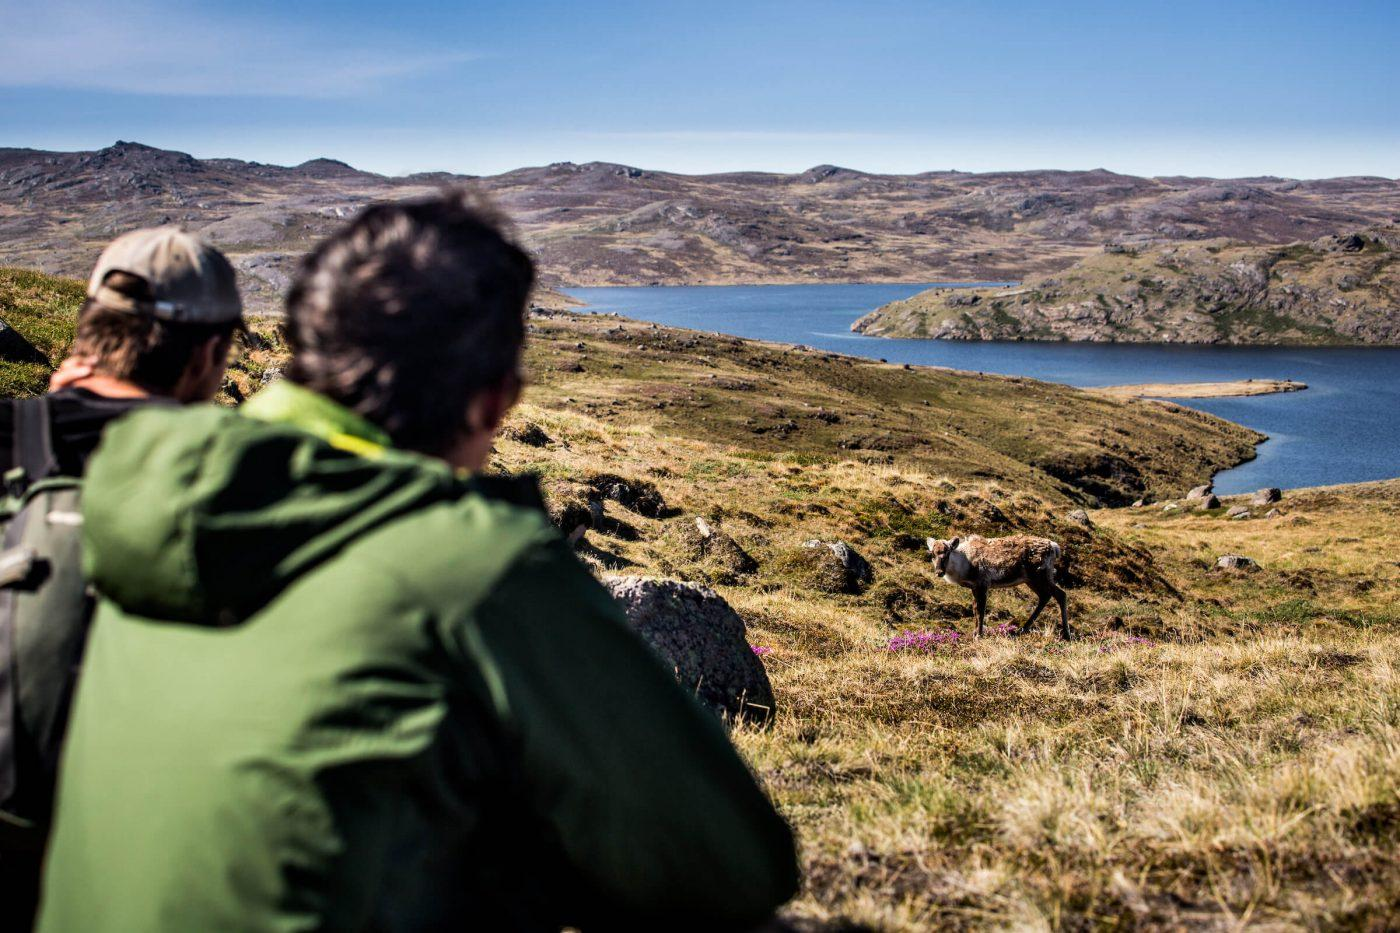 Hikers spotting reindeer and other wildlife in the Arctic Circle backcountry near Kangerlussuaq. By Raven Eye Photography